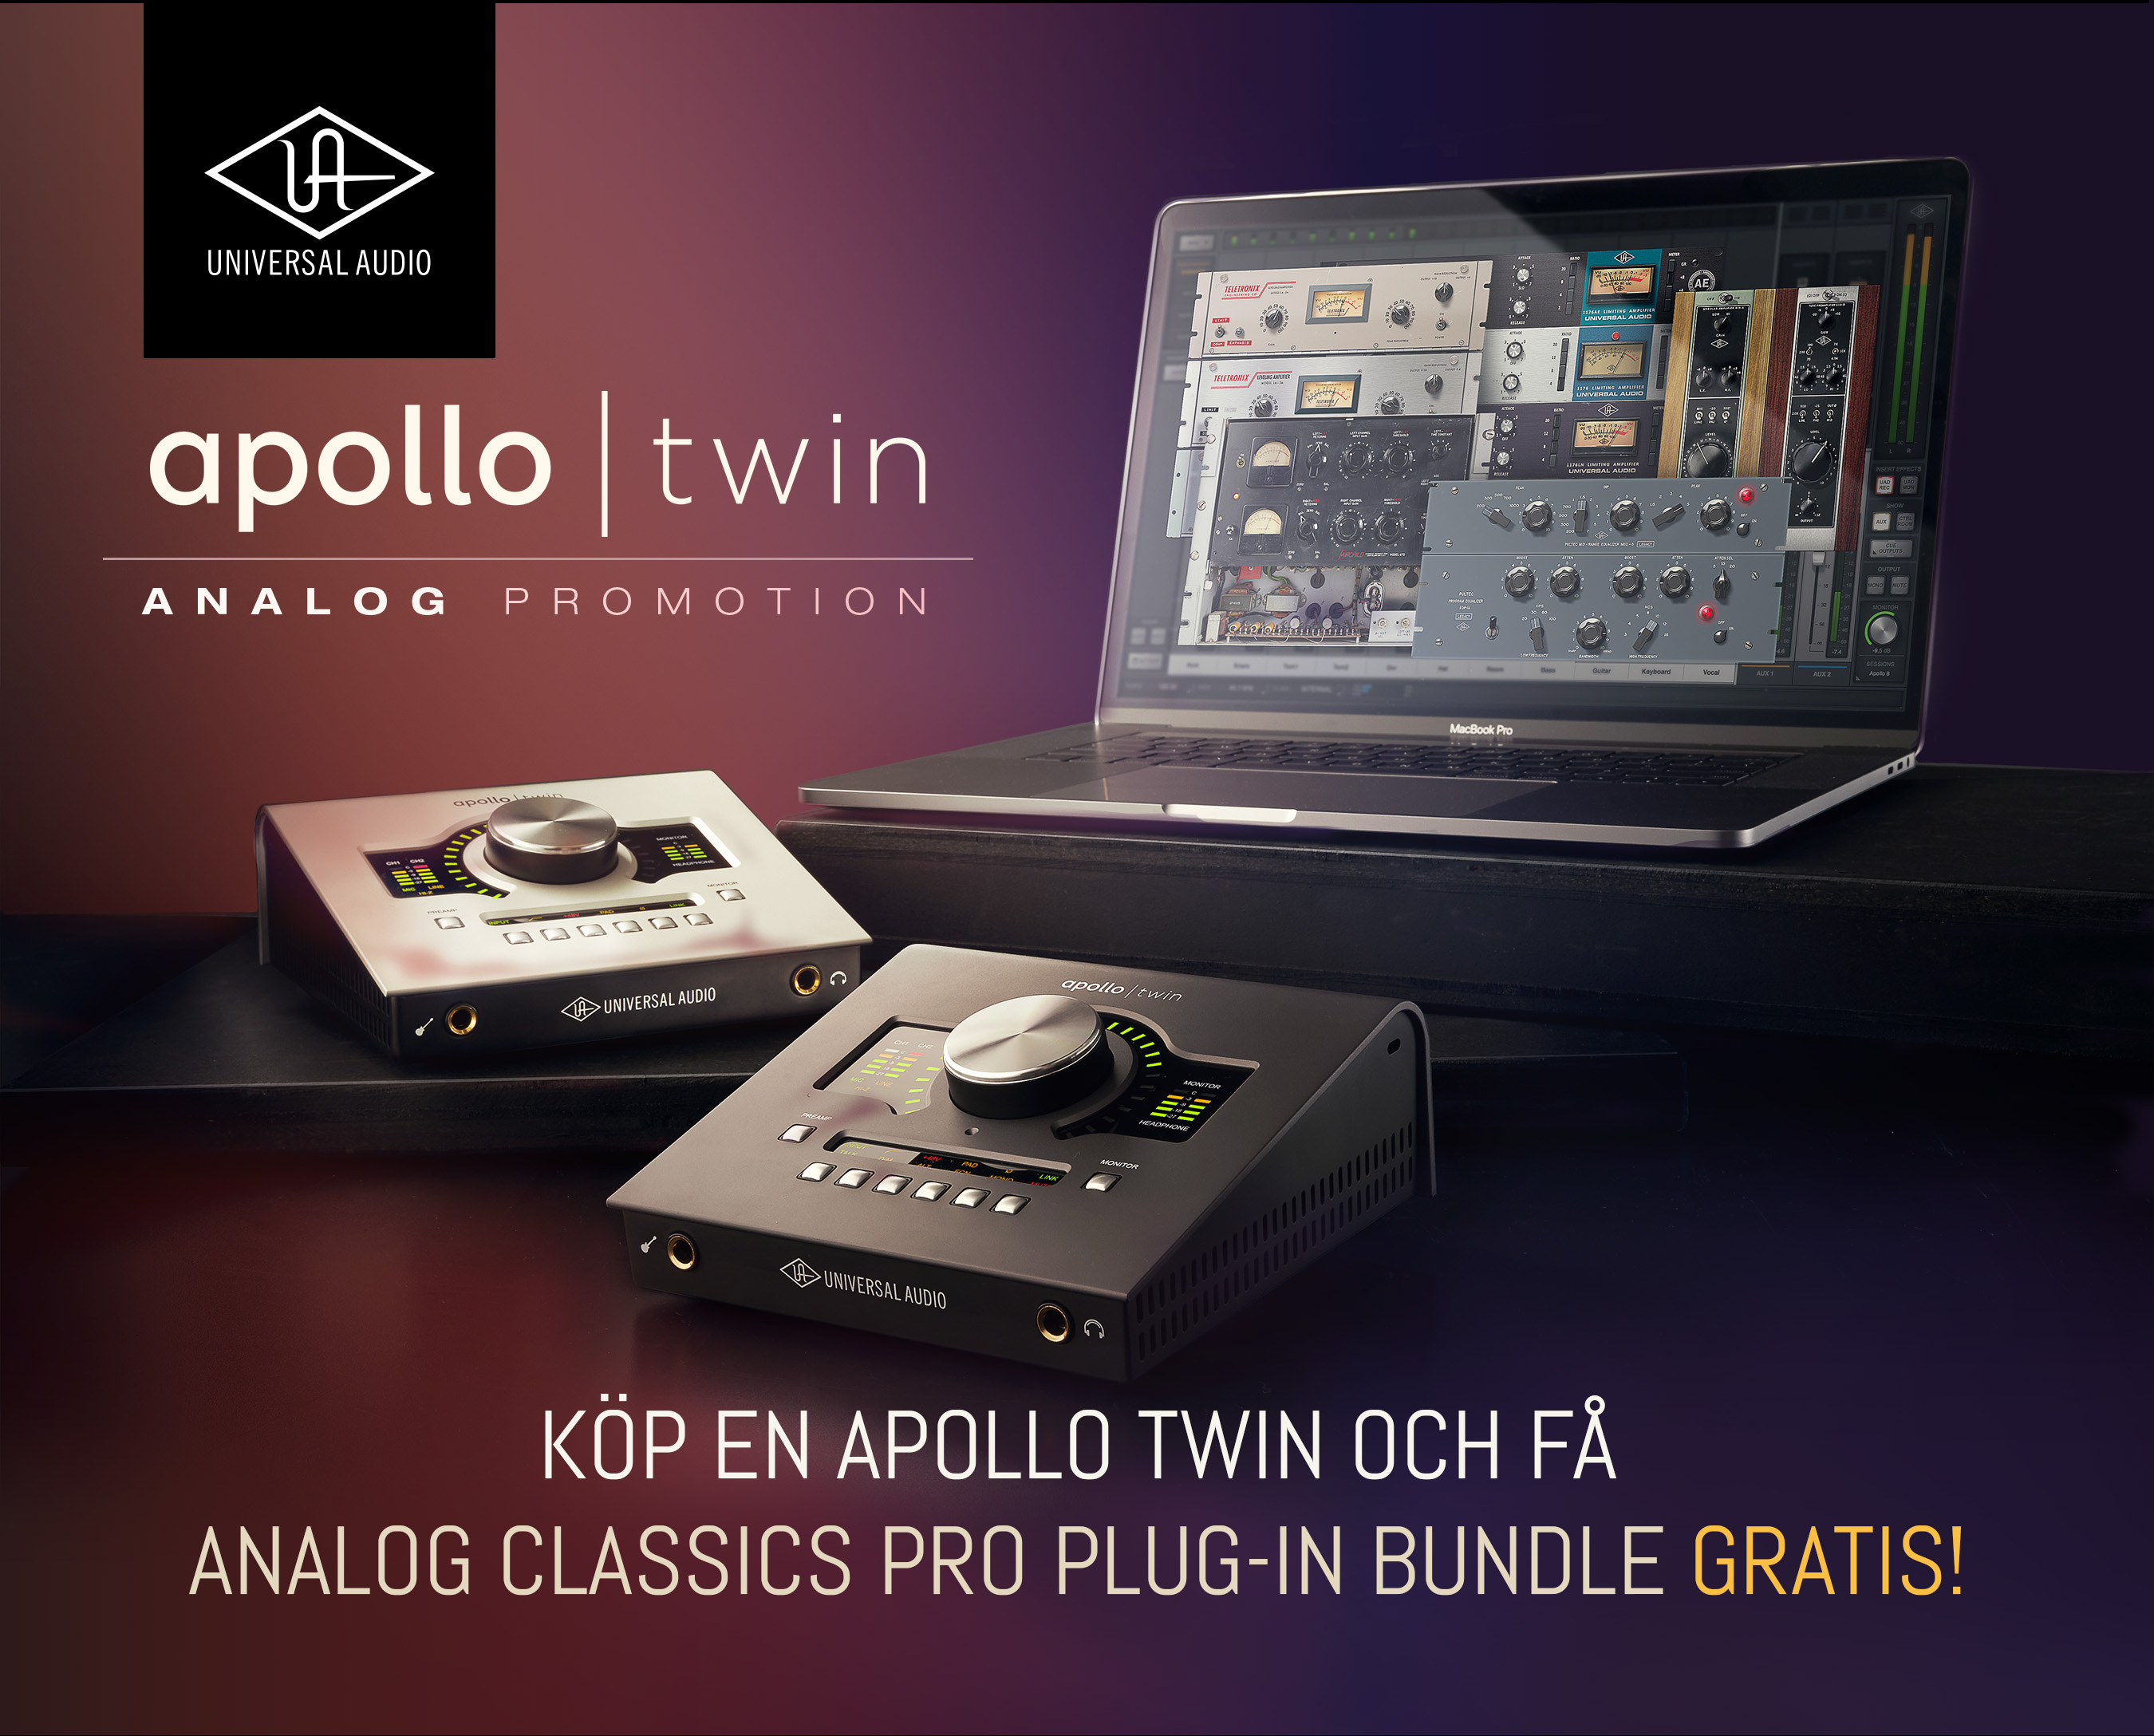 Apollo Twin Analog Promotion